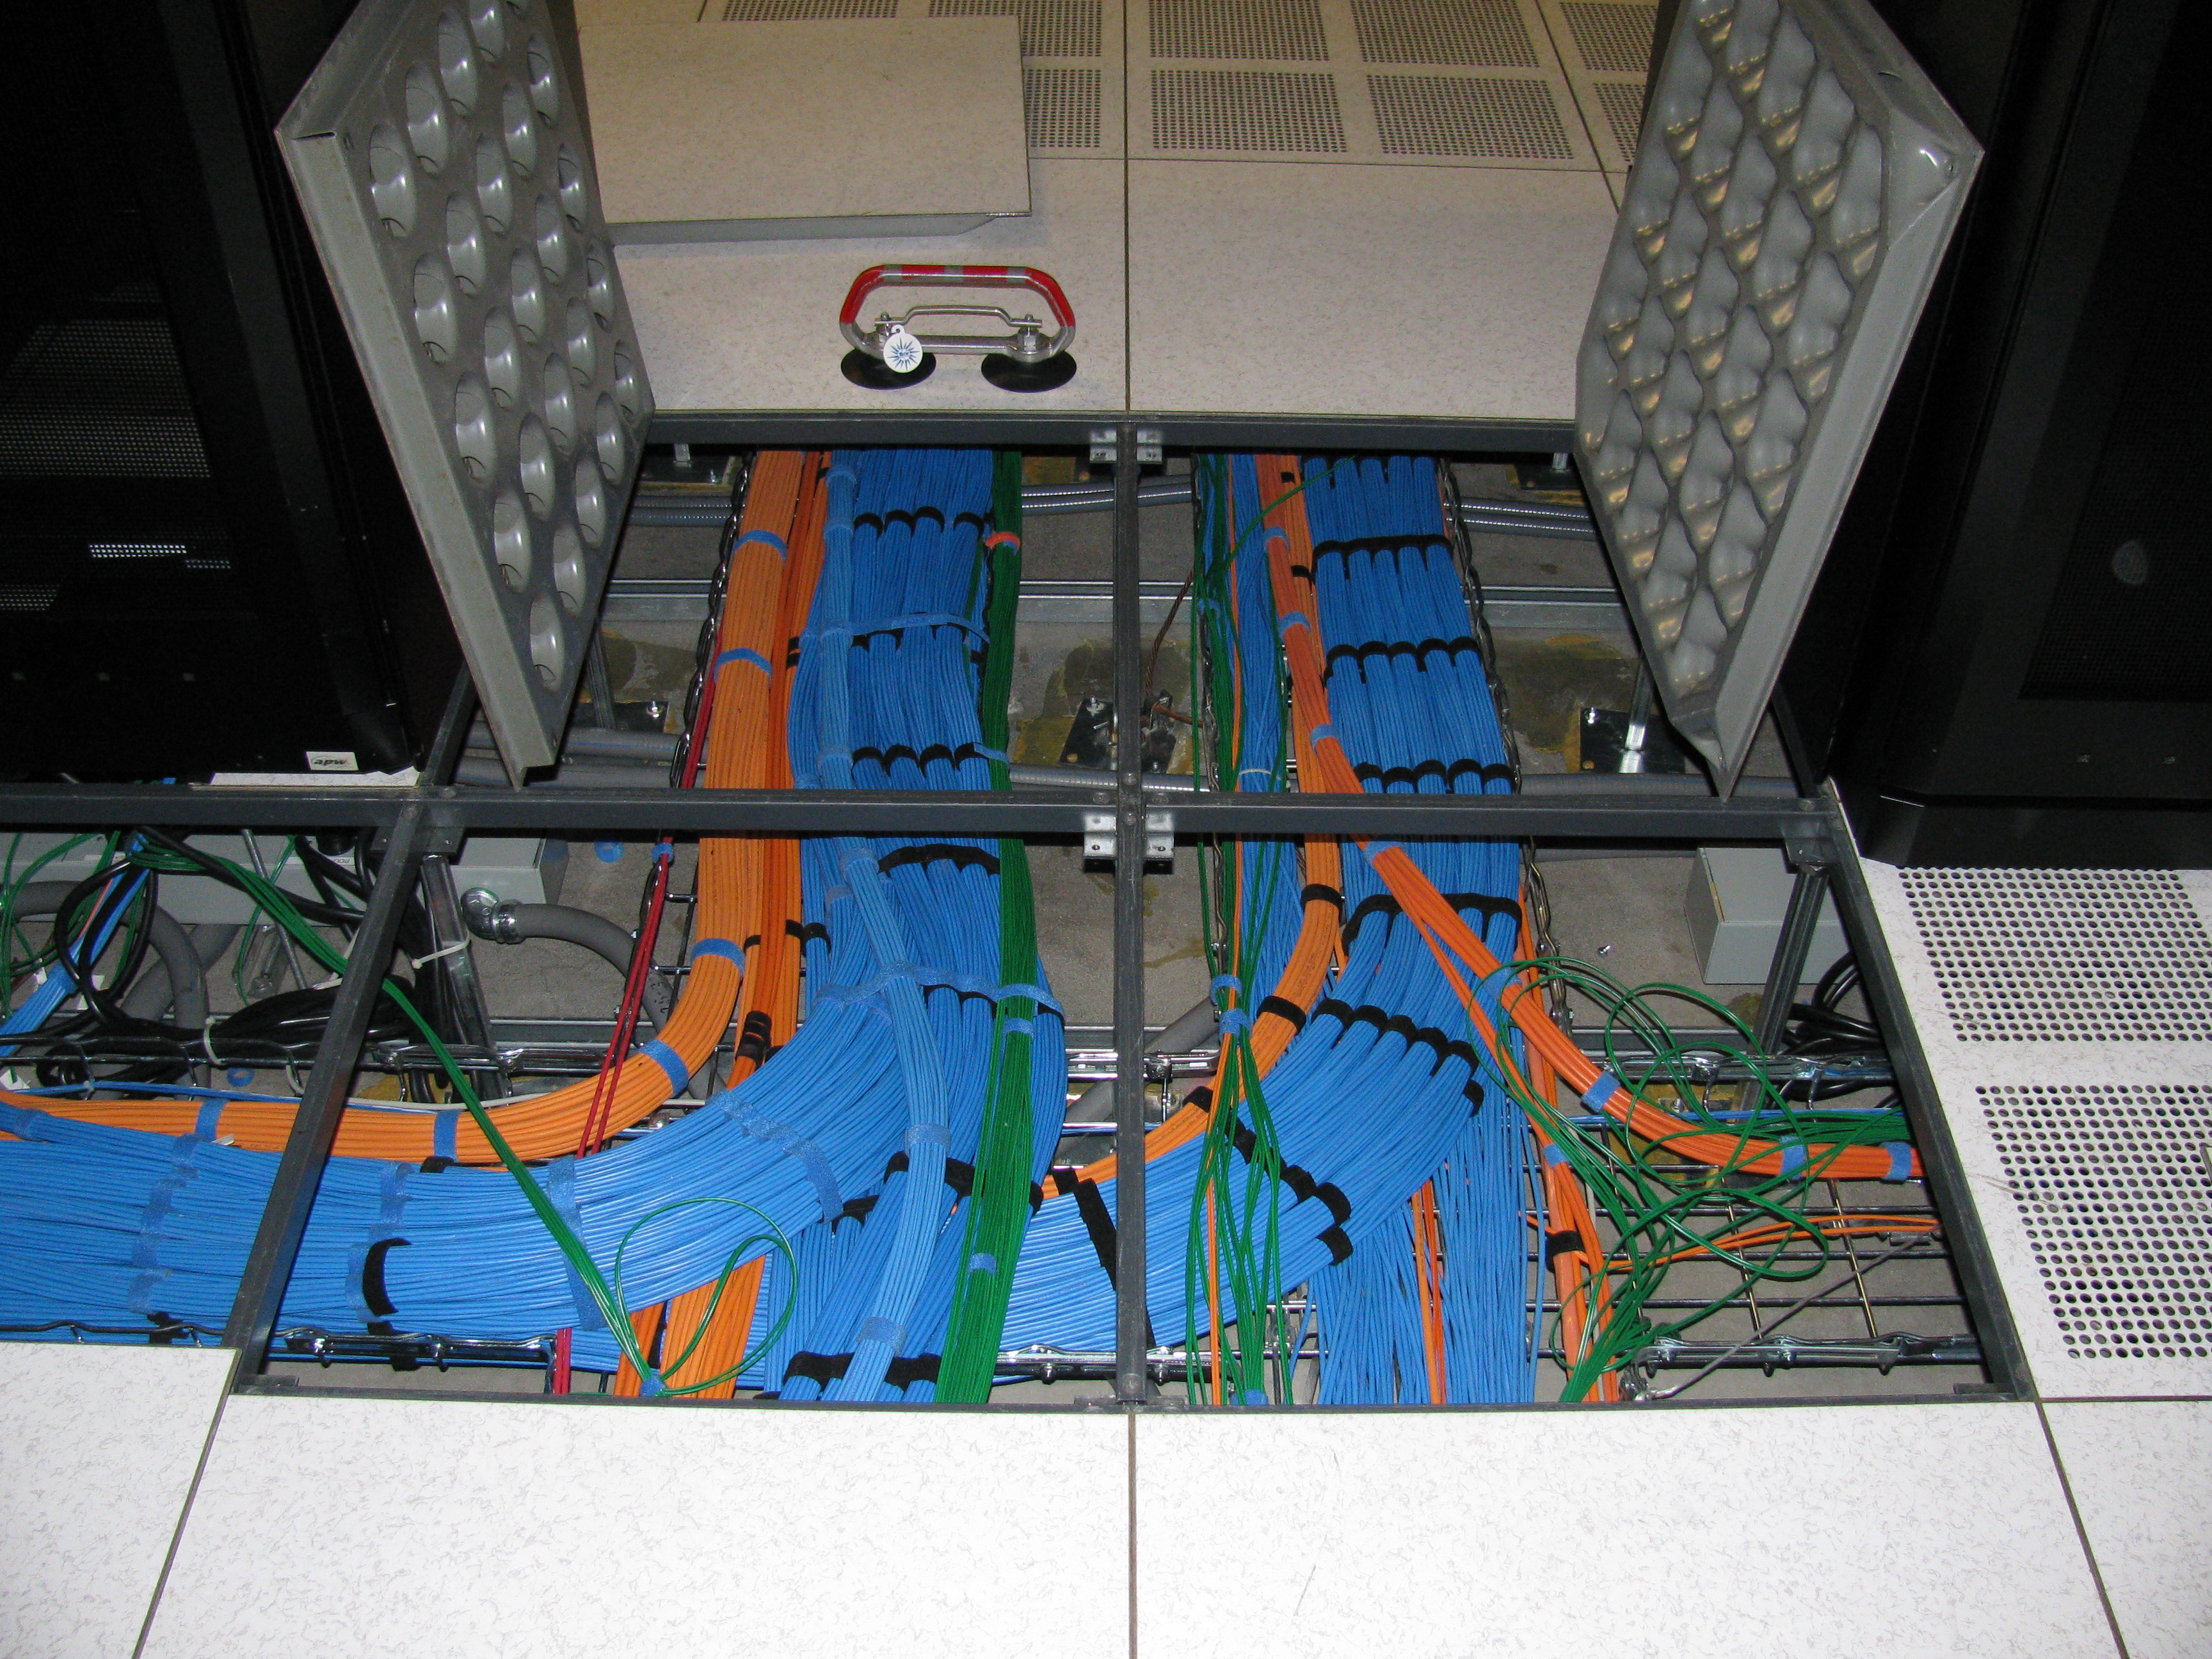 Data center under floor cable runs